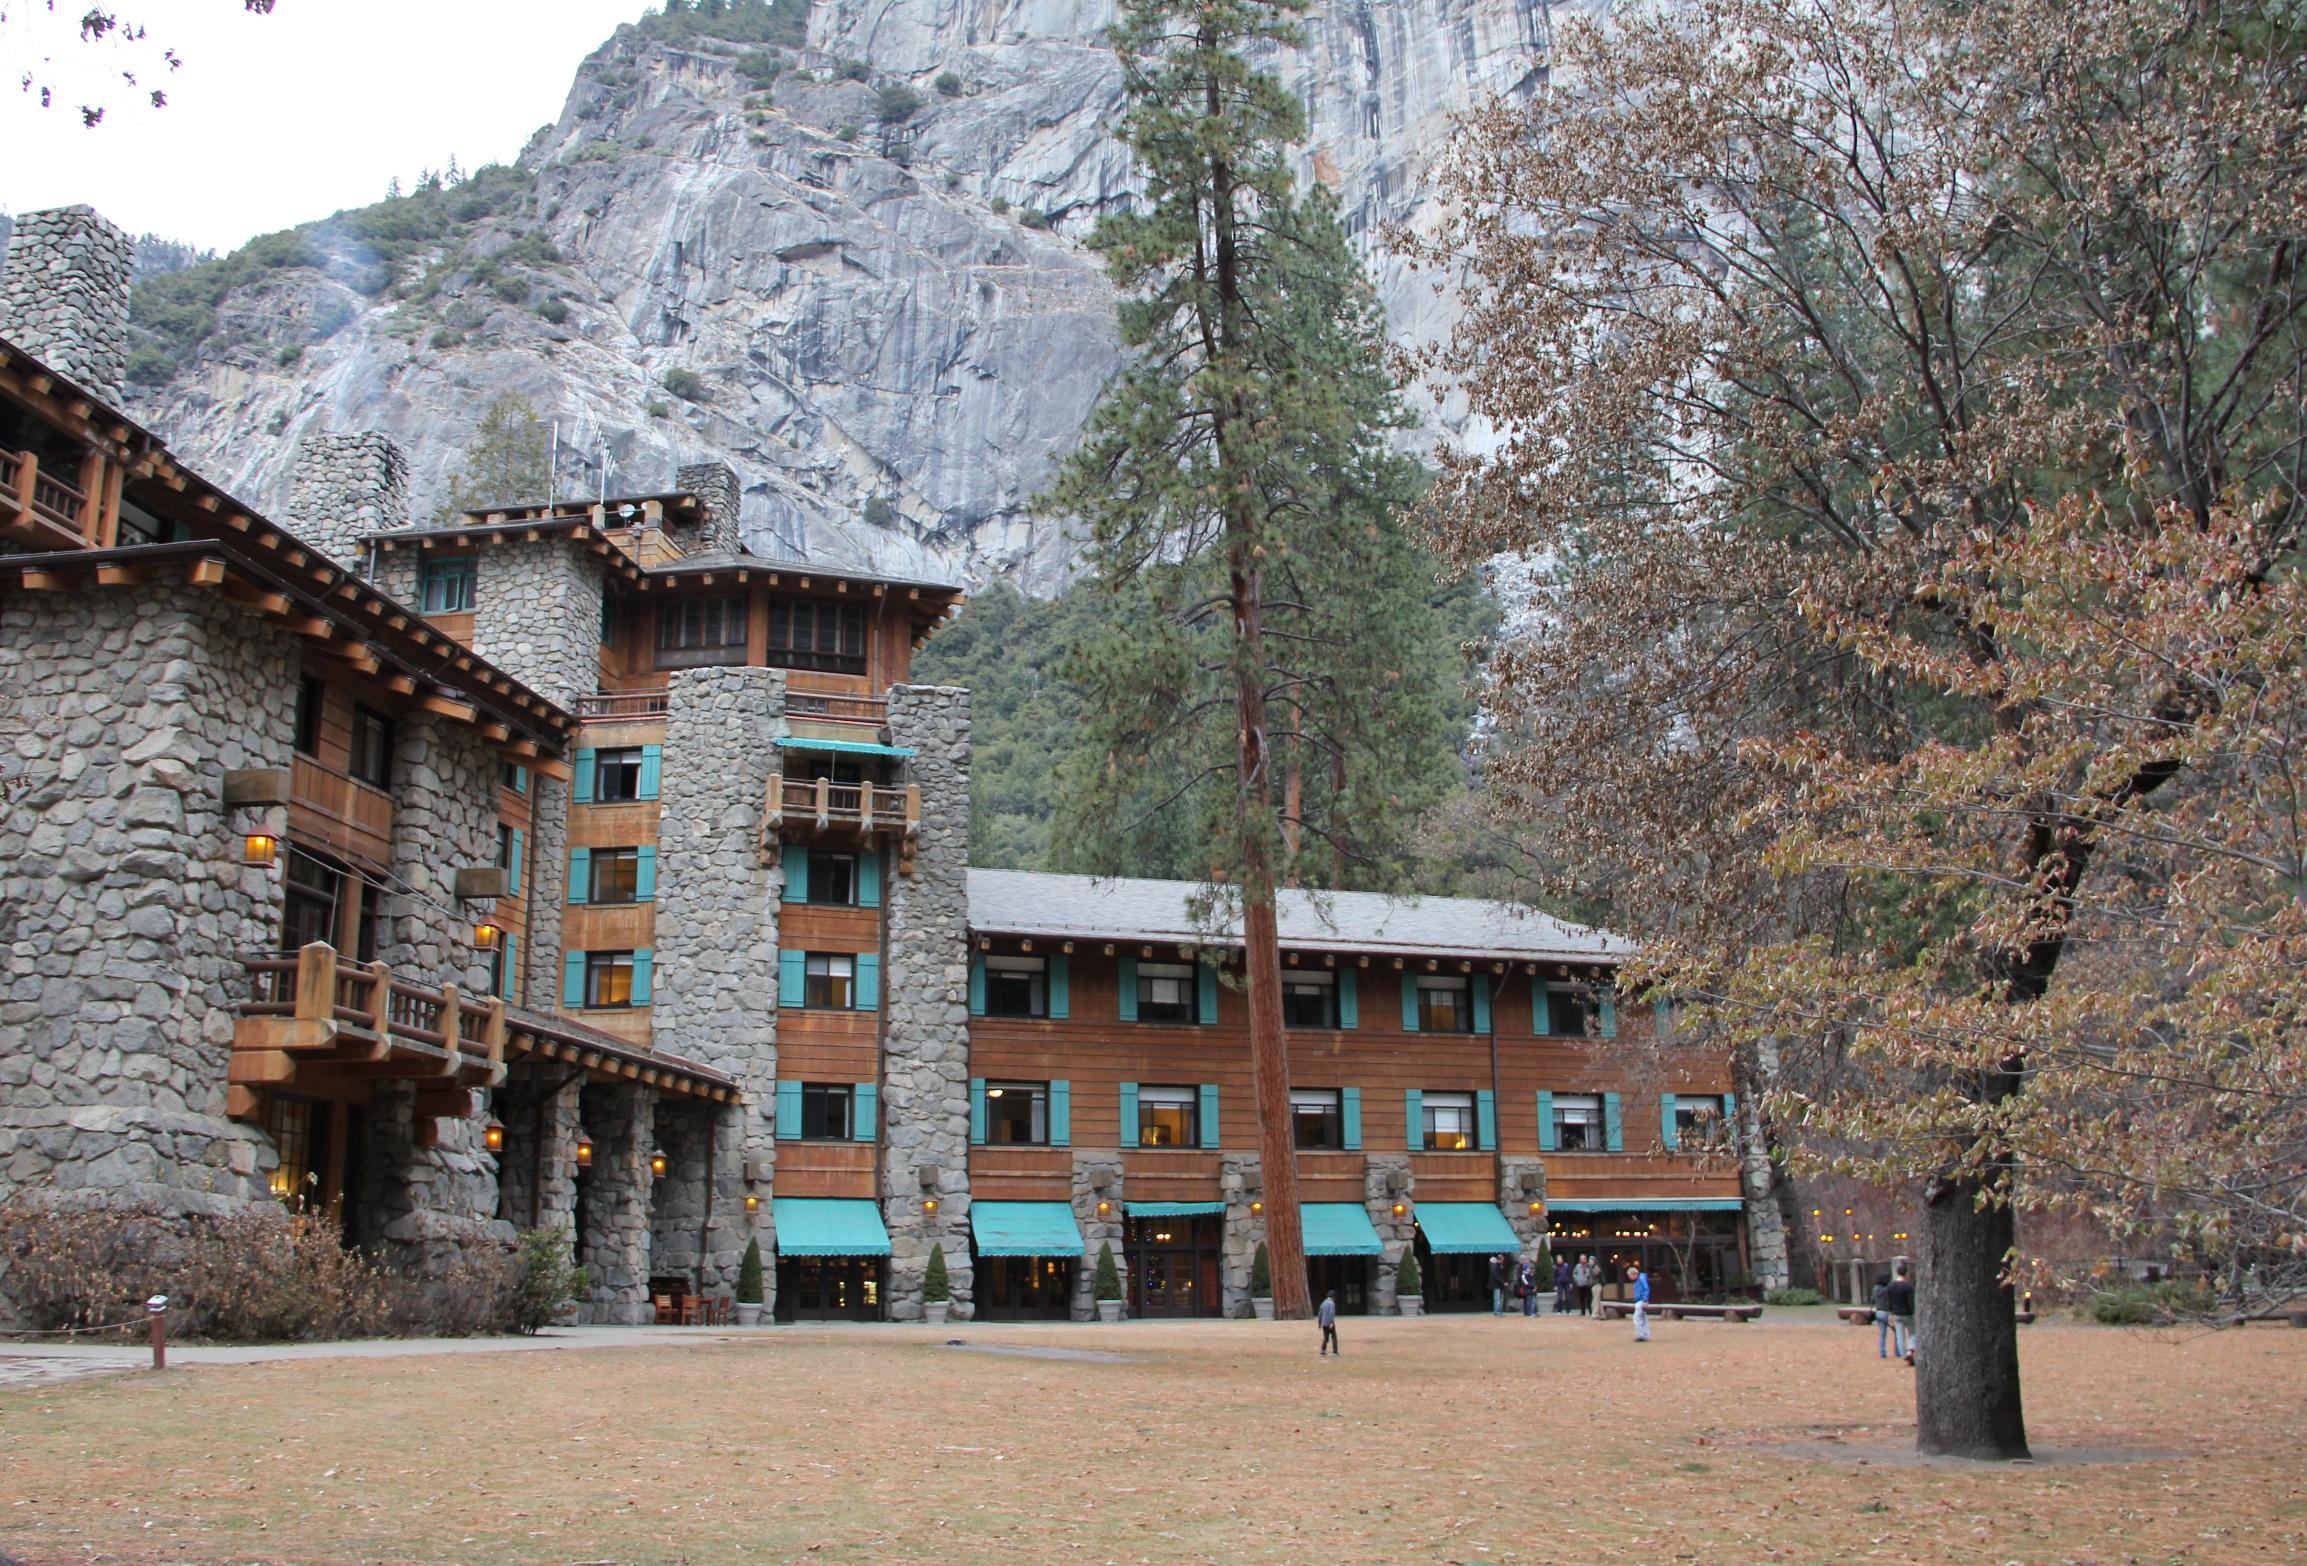 ahwahnee single girls Honeymoons senior single student women all slideshows the ahwahnee dining room the ahwahnee, yosemite valley about our rating system our rating.